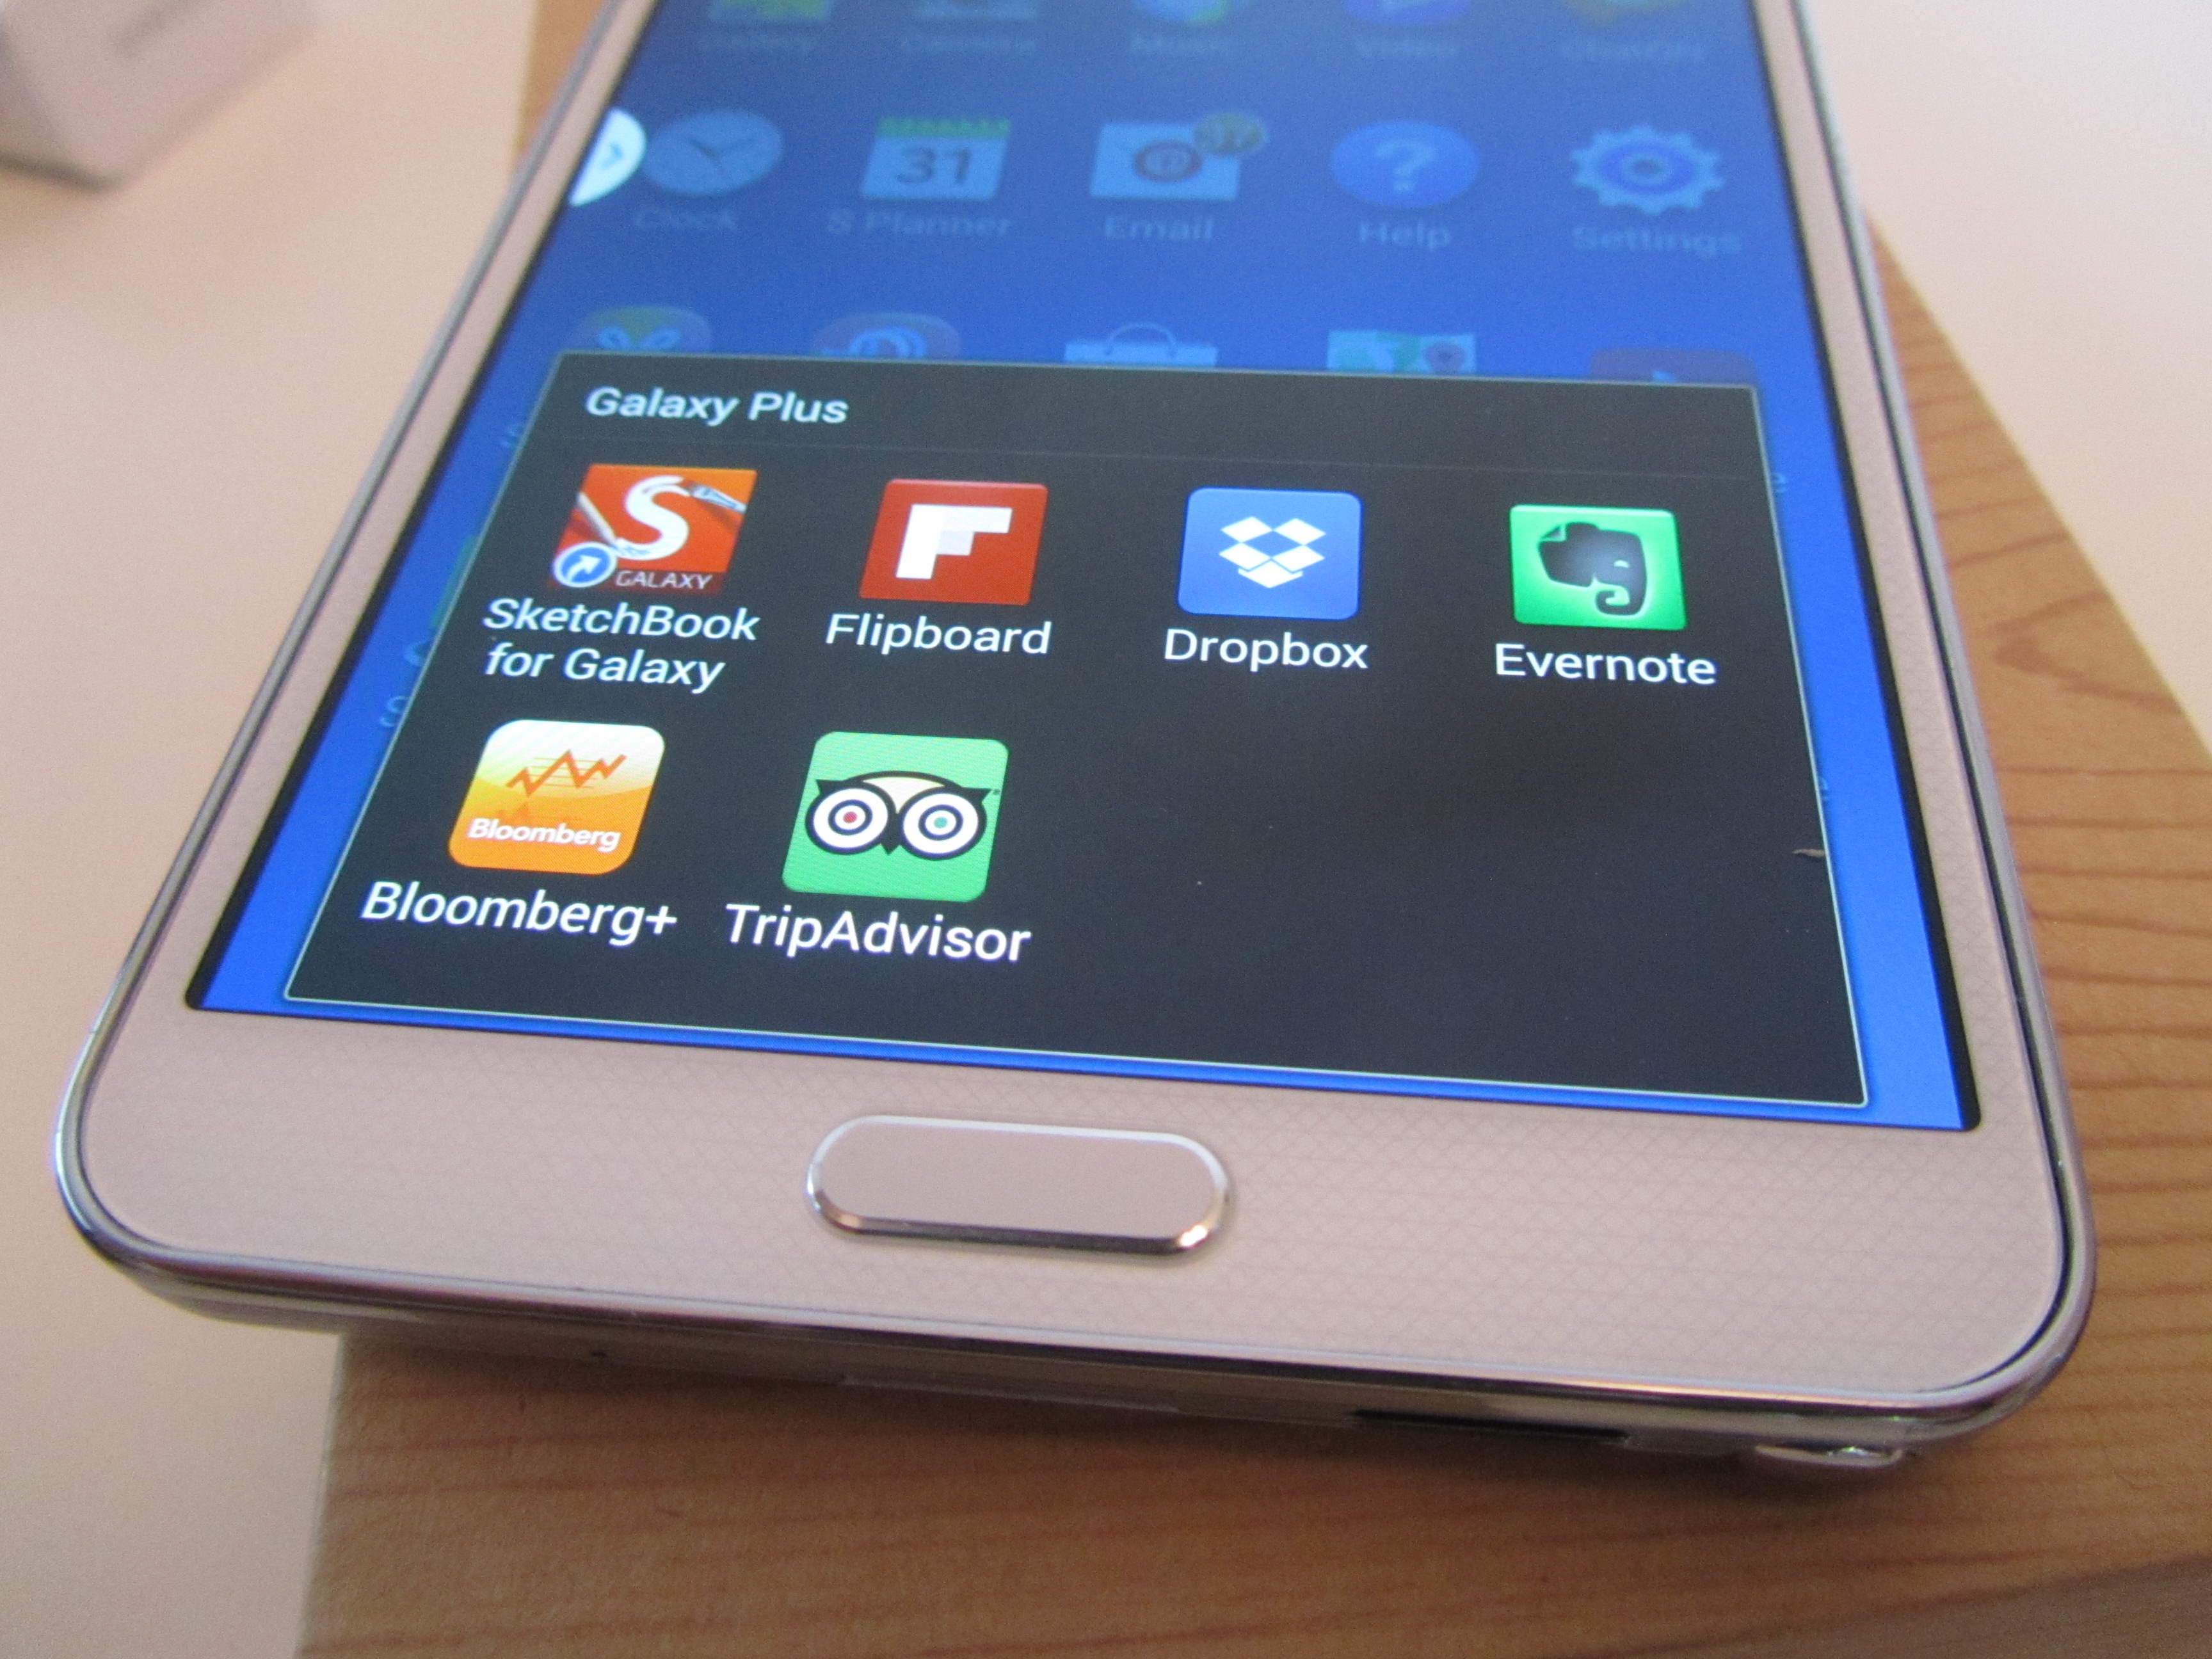 Note3 apps Samsung Galaxy Note 3 review: One of the best Android handsets money can buy, if you can hold it